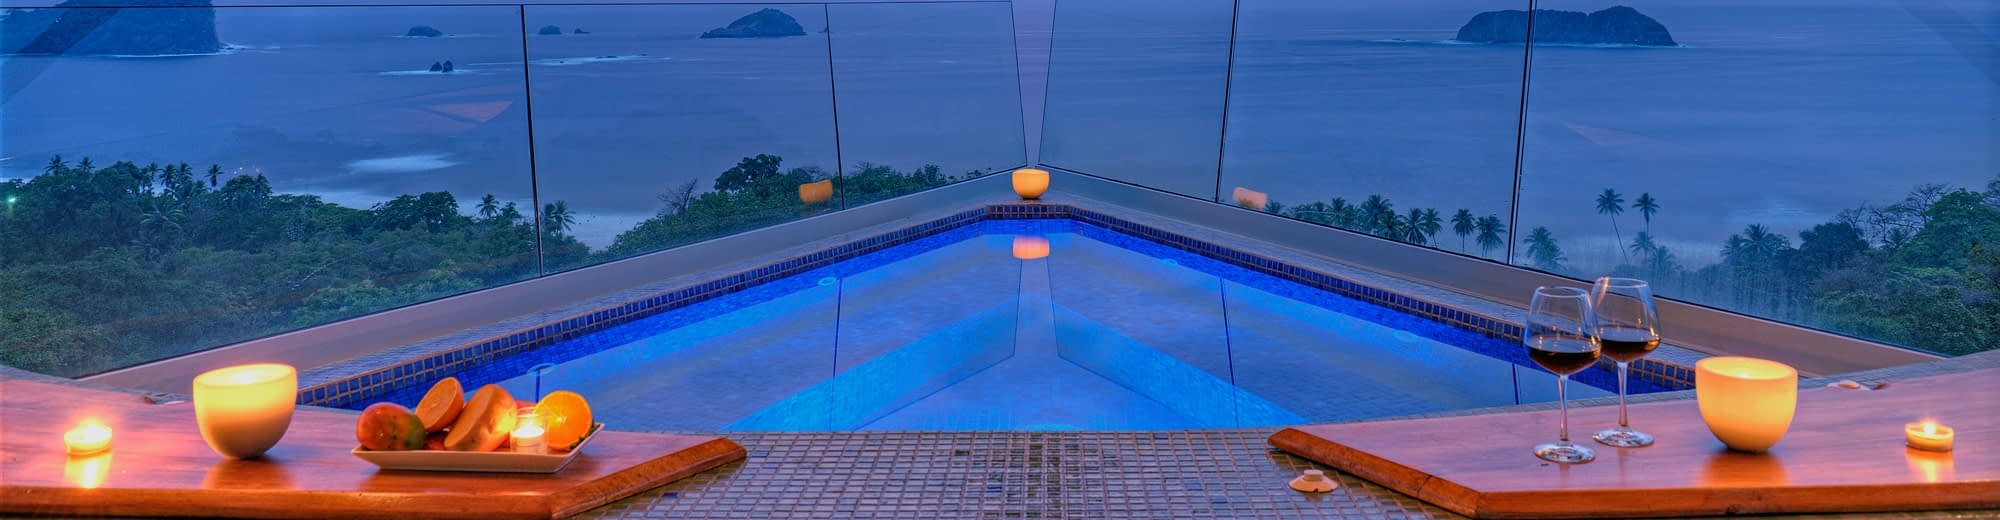 rooftop jacuzzi in luxury costa rica villa